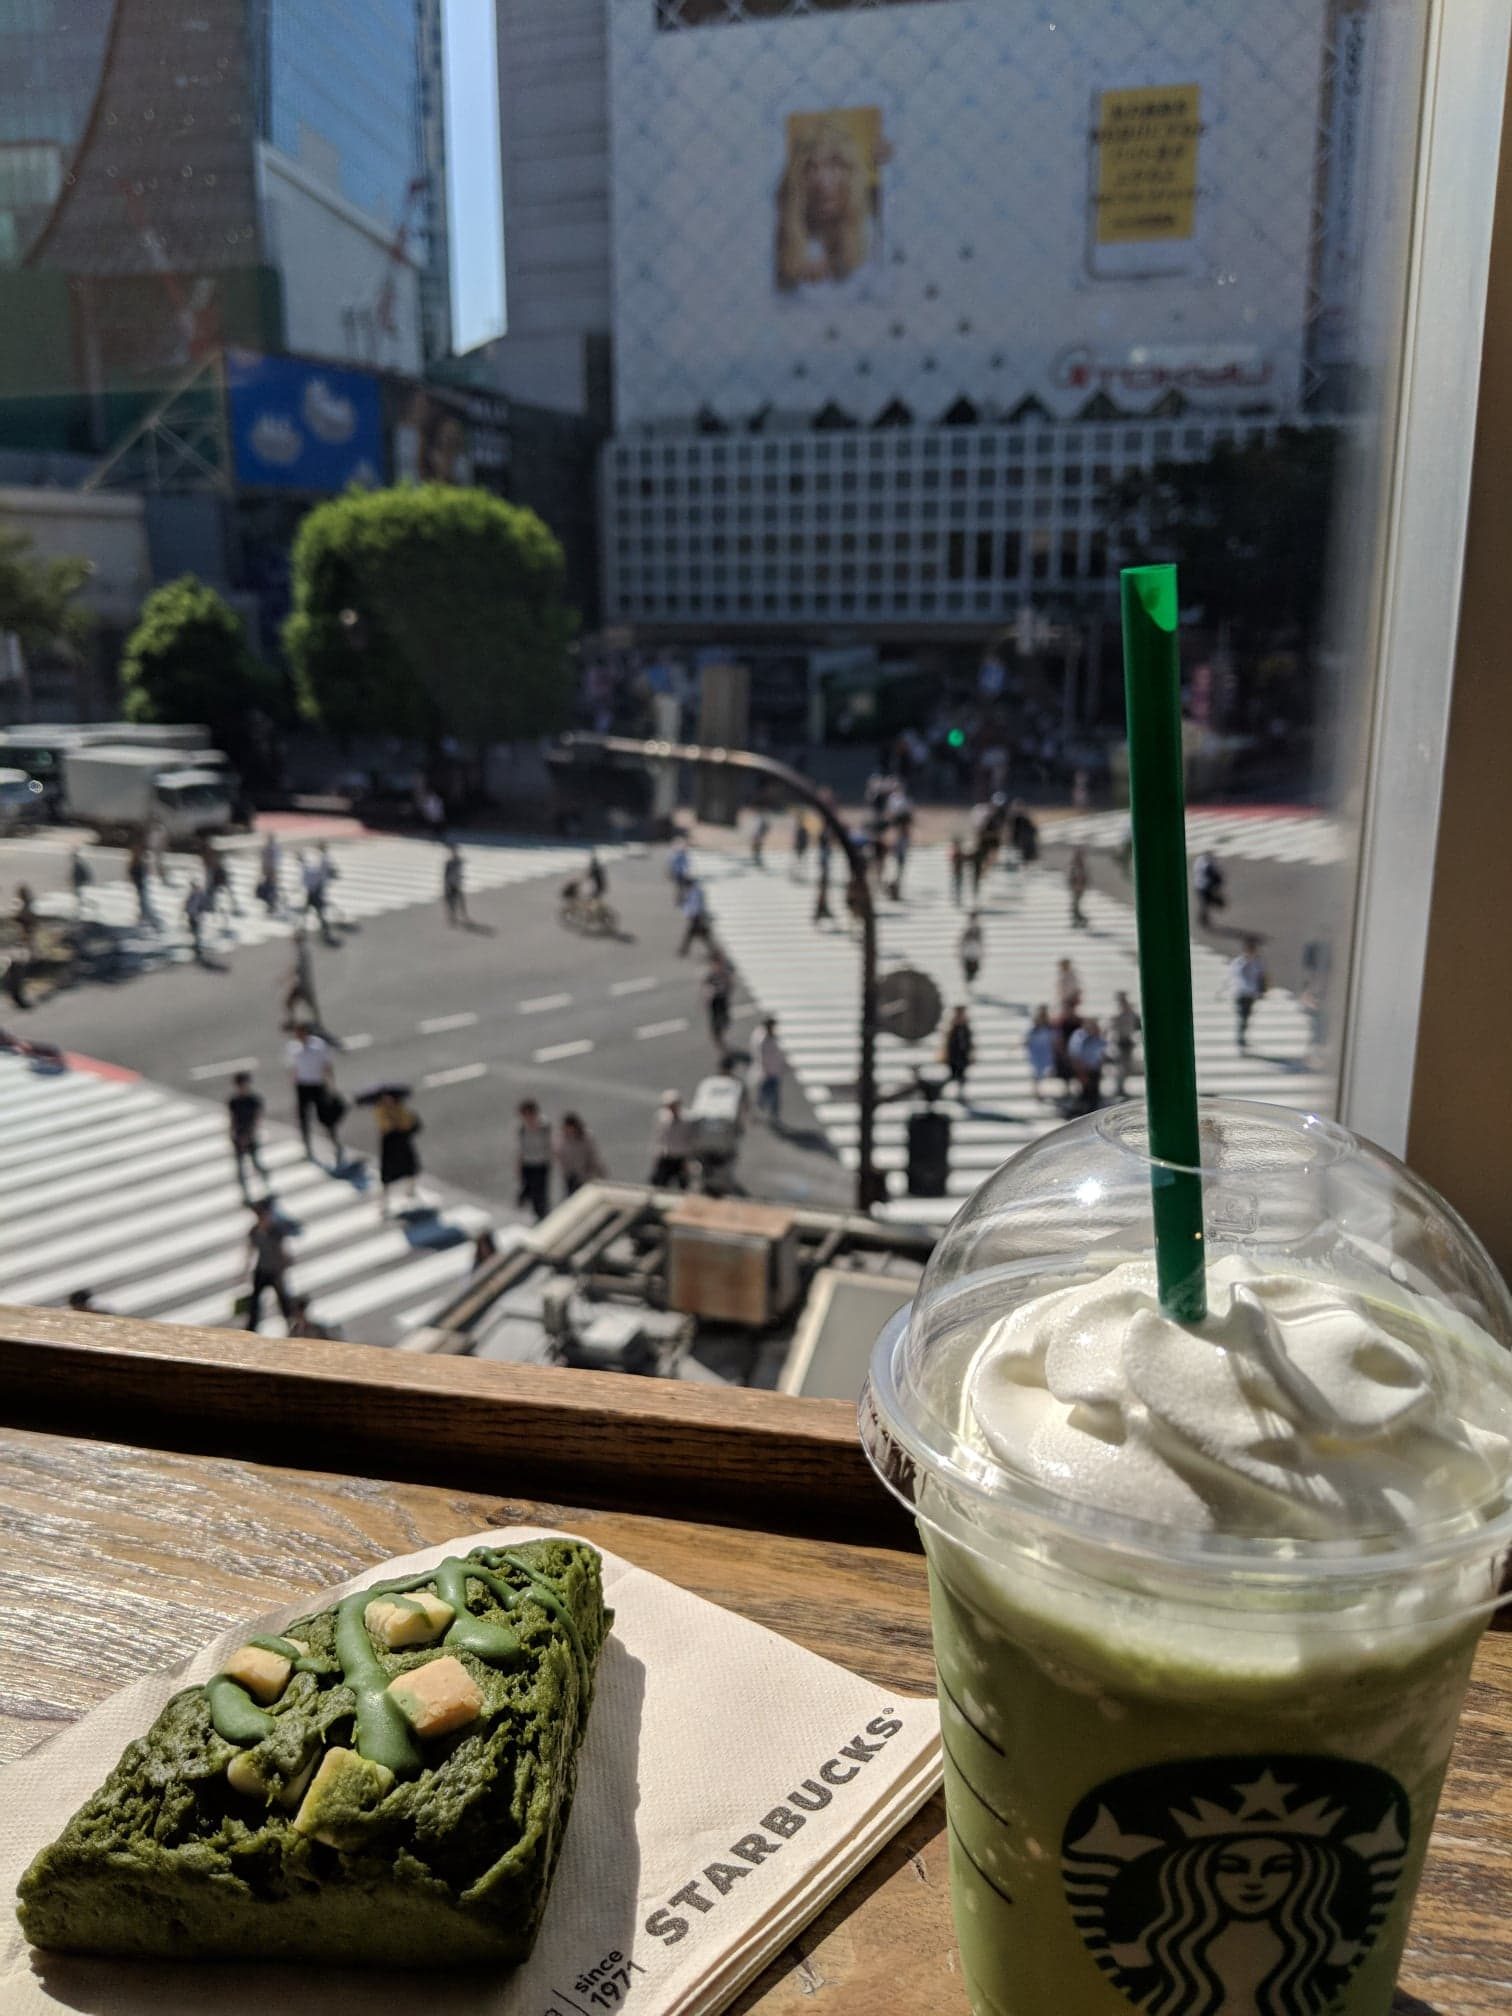 And while you are there, - I do recommend trying out Starbucks (there is one overlooking the Shibuya Crossing!) because they have some different food and drinks that you cannot get elsewhere. #PRO-TIP